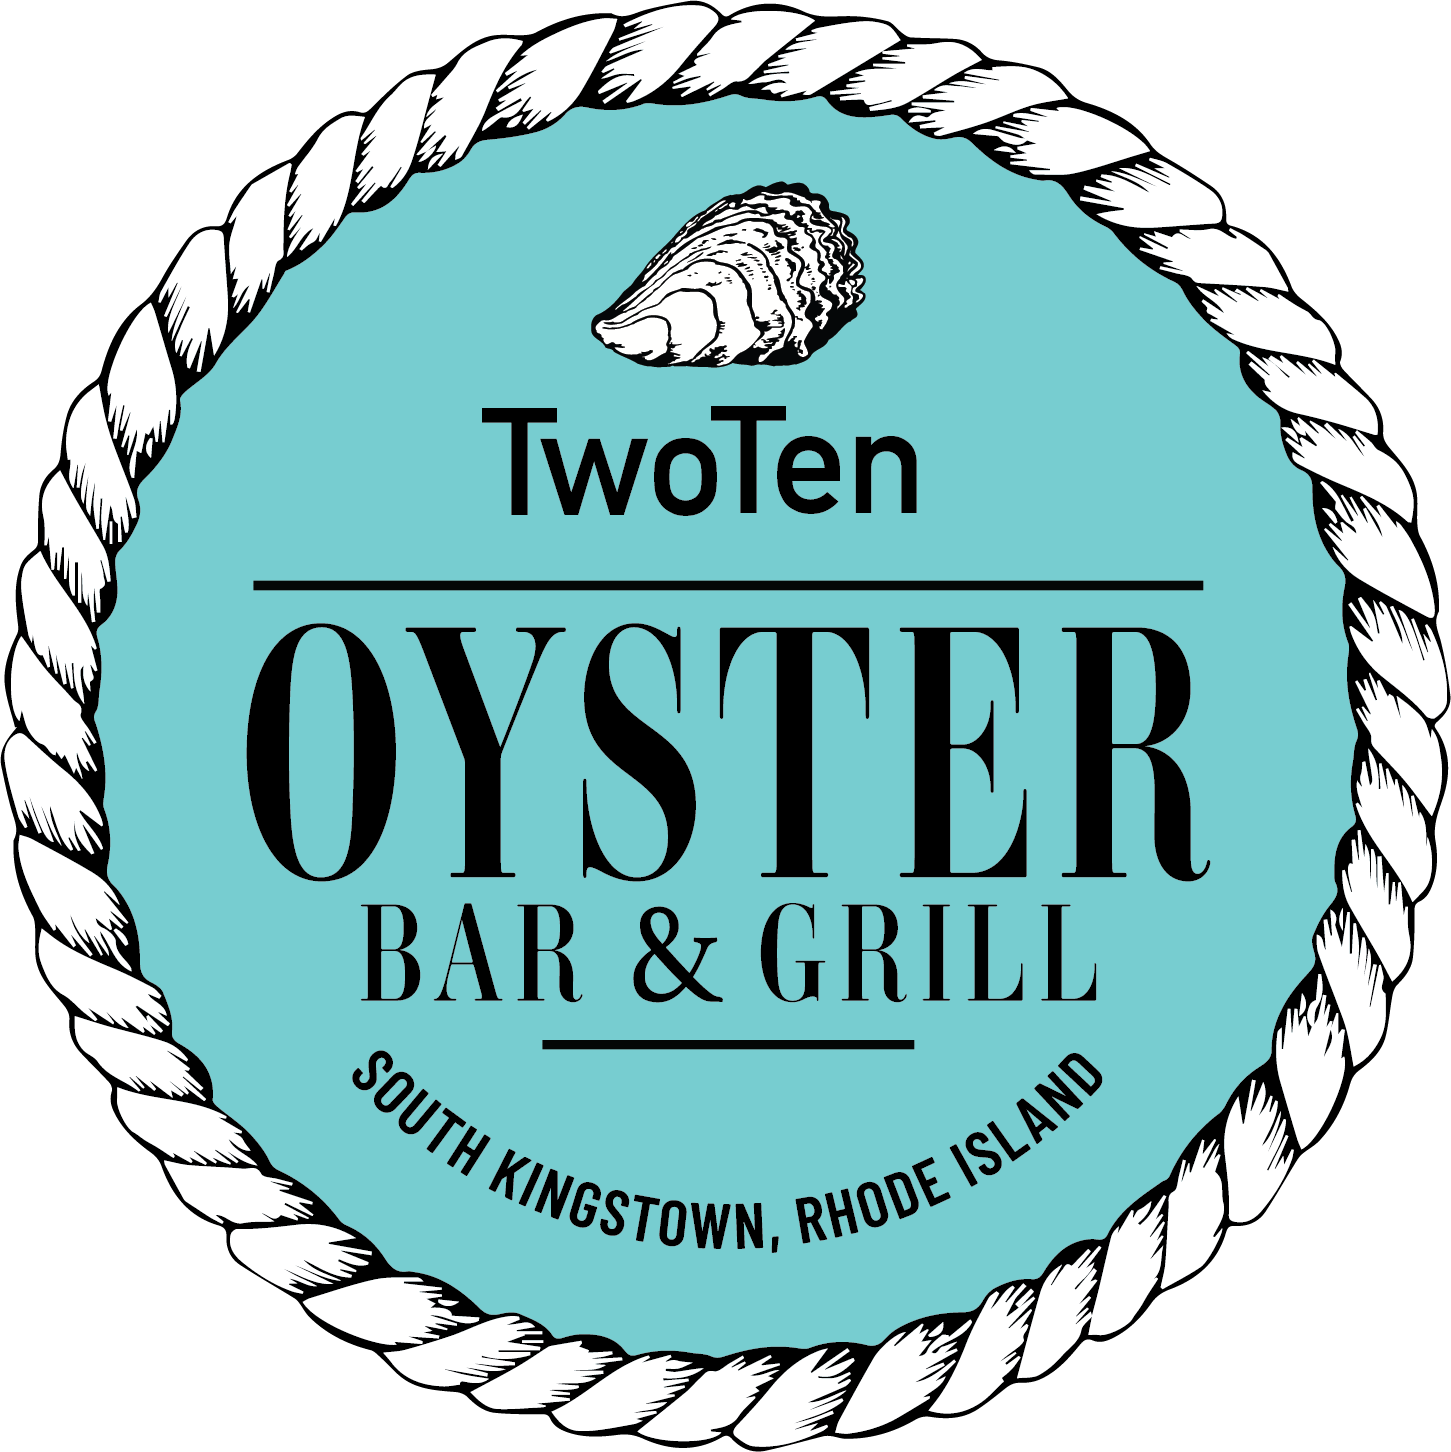 Two Ten Oyster Bar & Grill Home